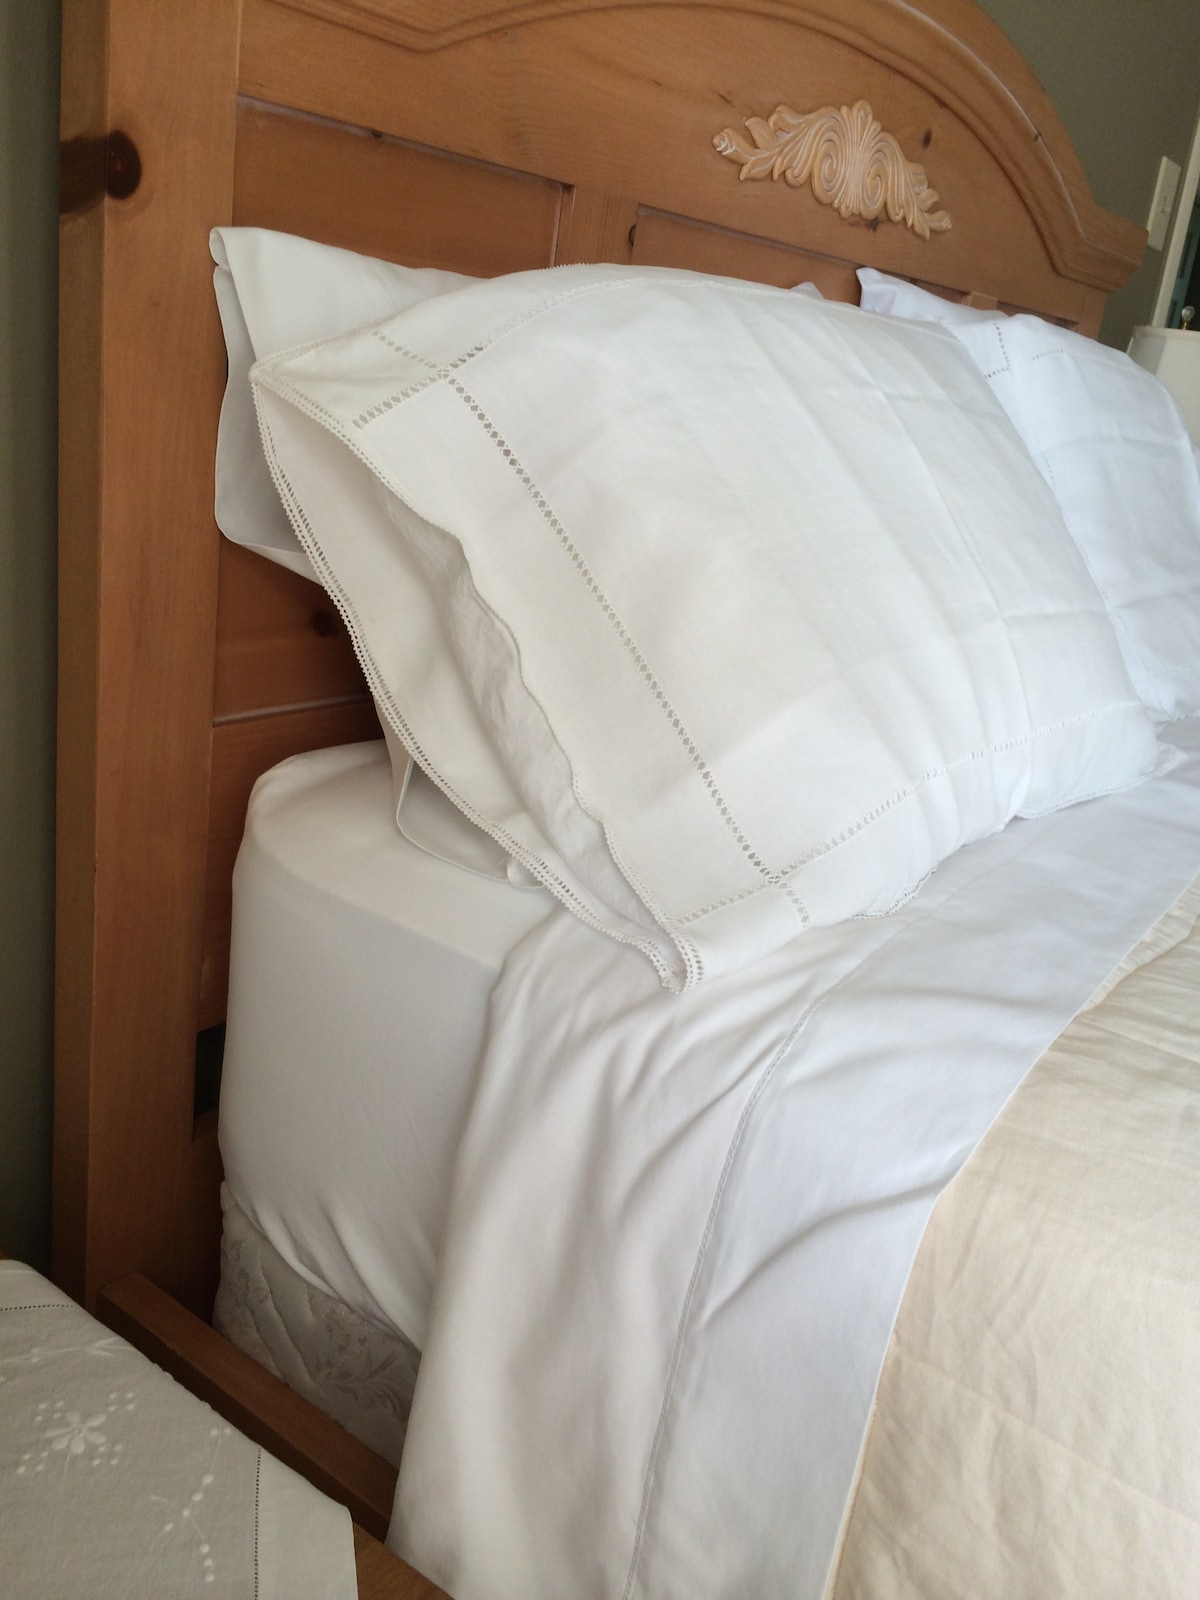 Nicely ironed white sheets!